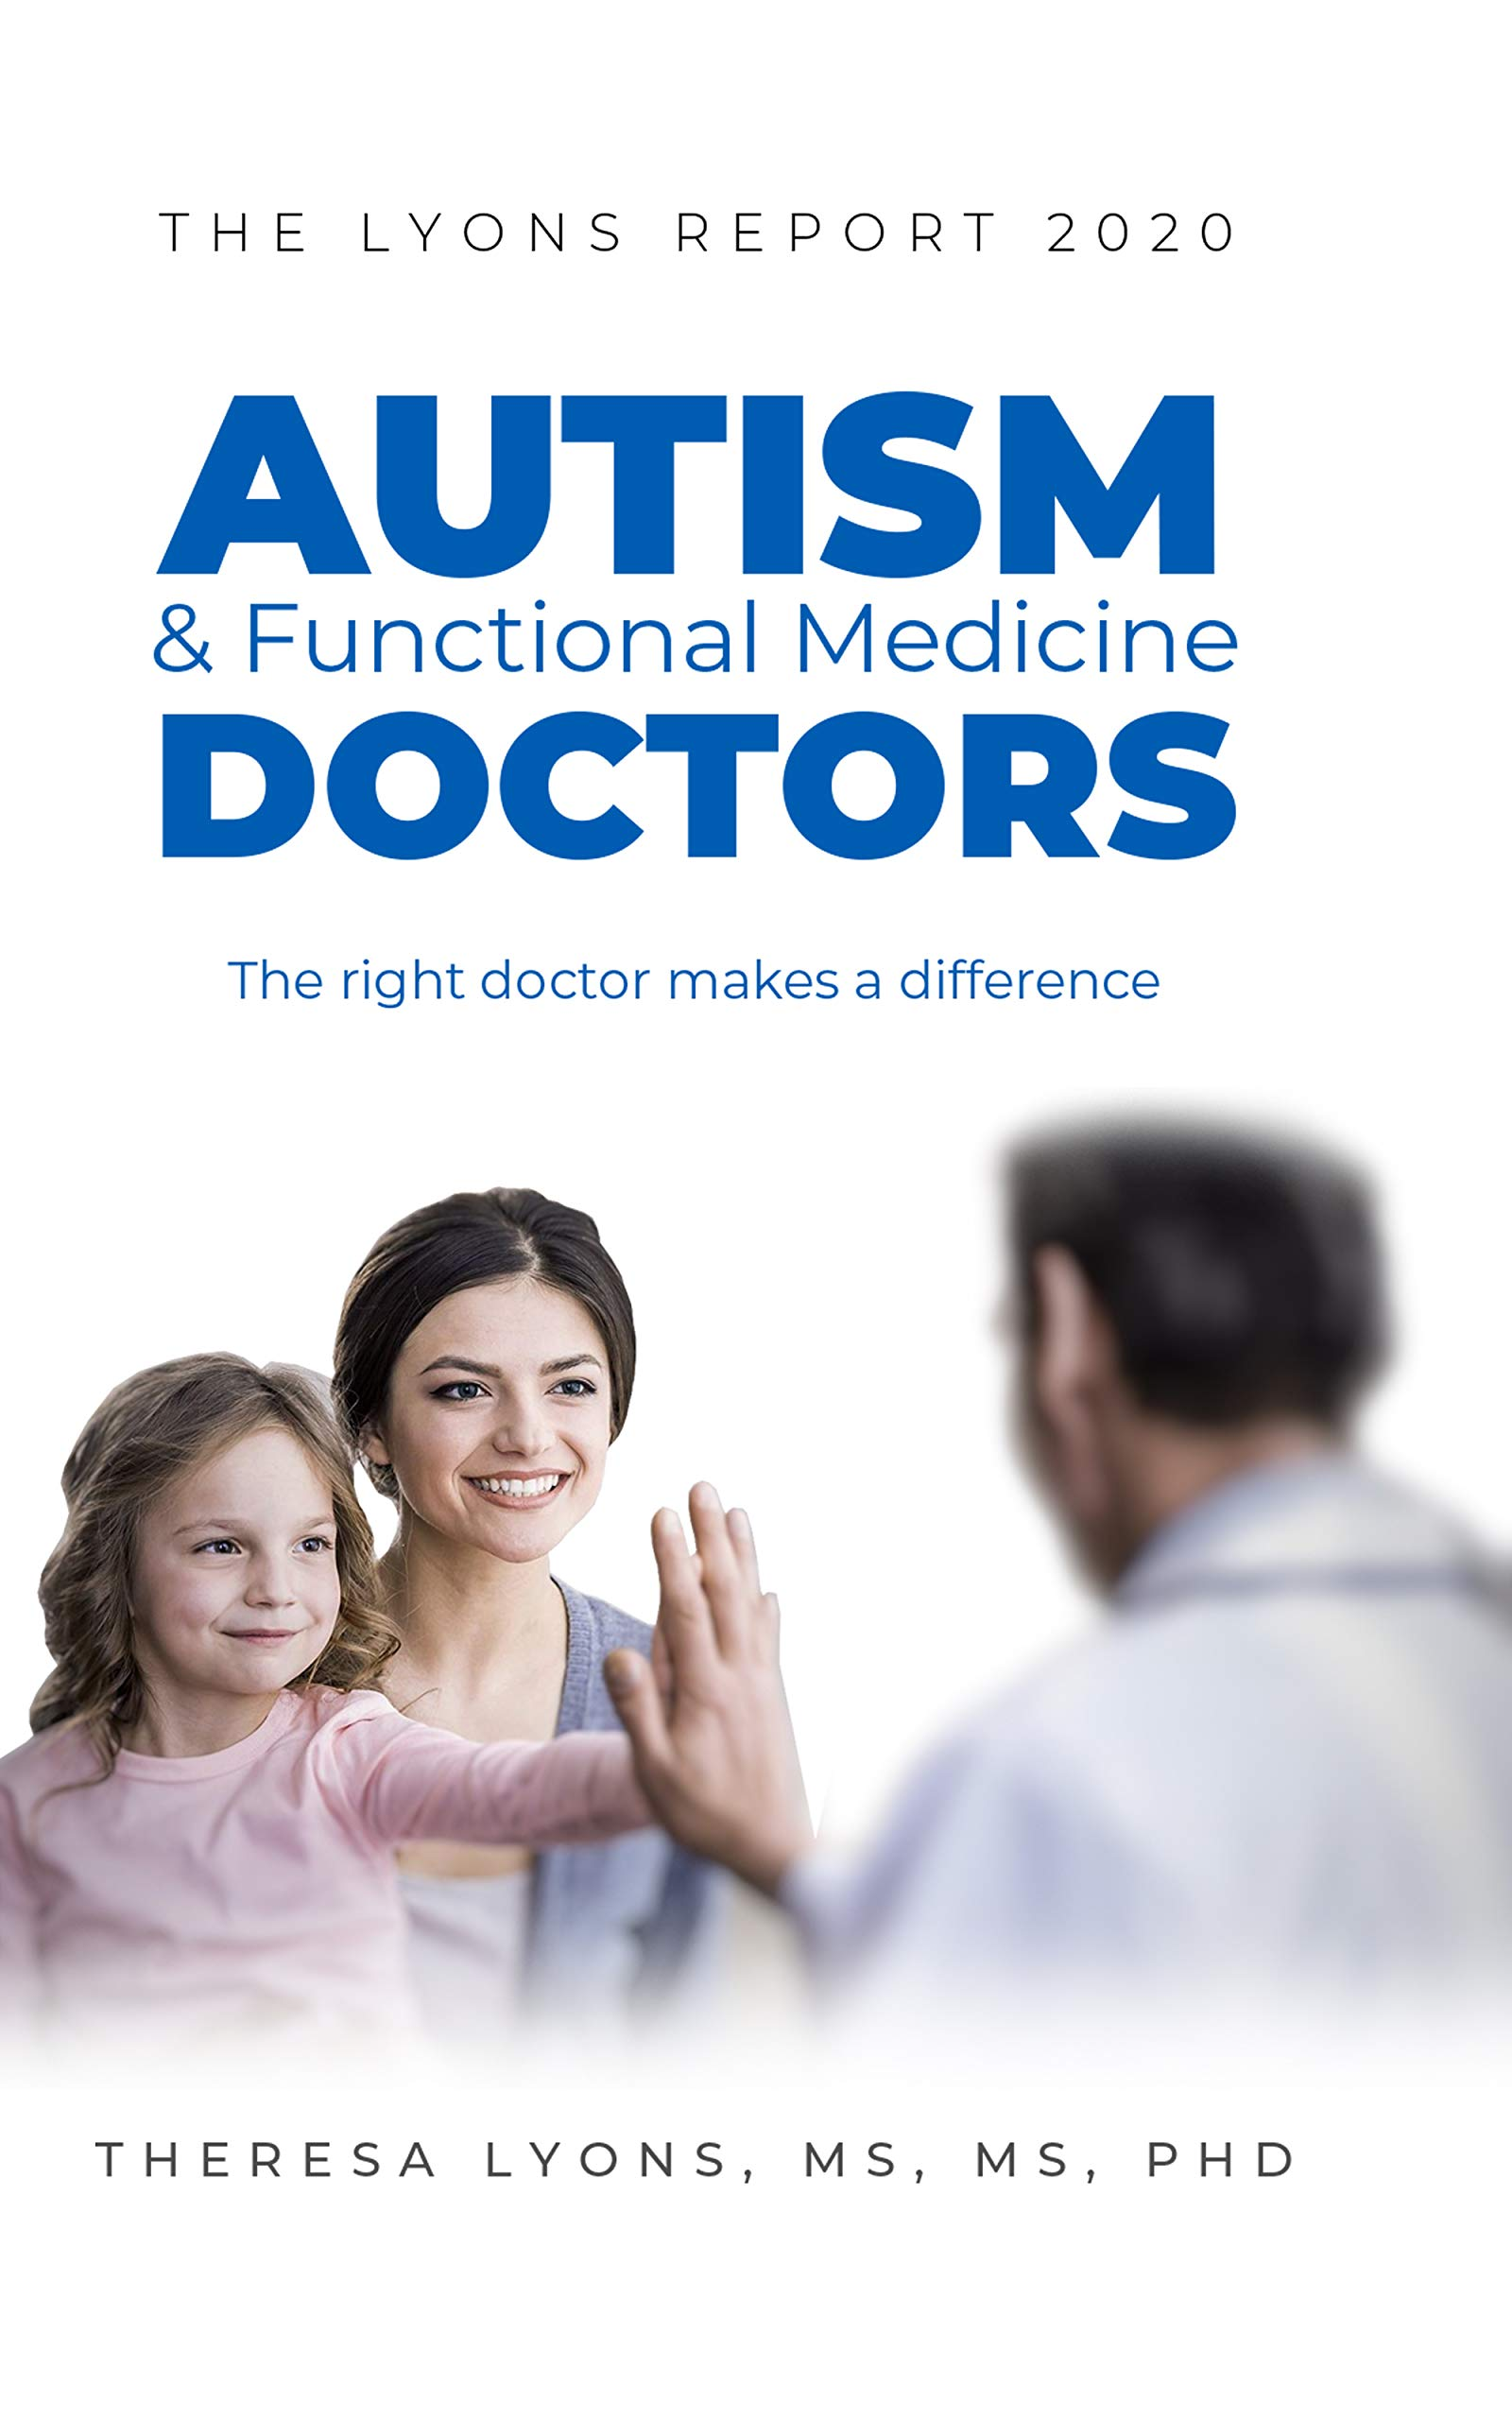 Image OfThe Lyons Report 2020: Autism And Functional Medicine Doctors (English Edition)